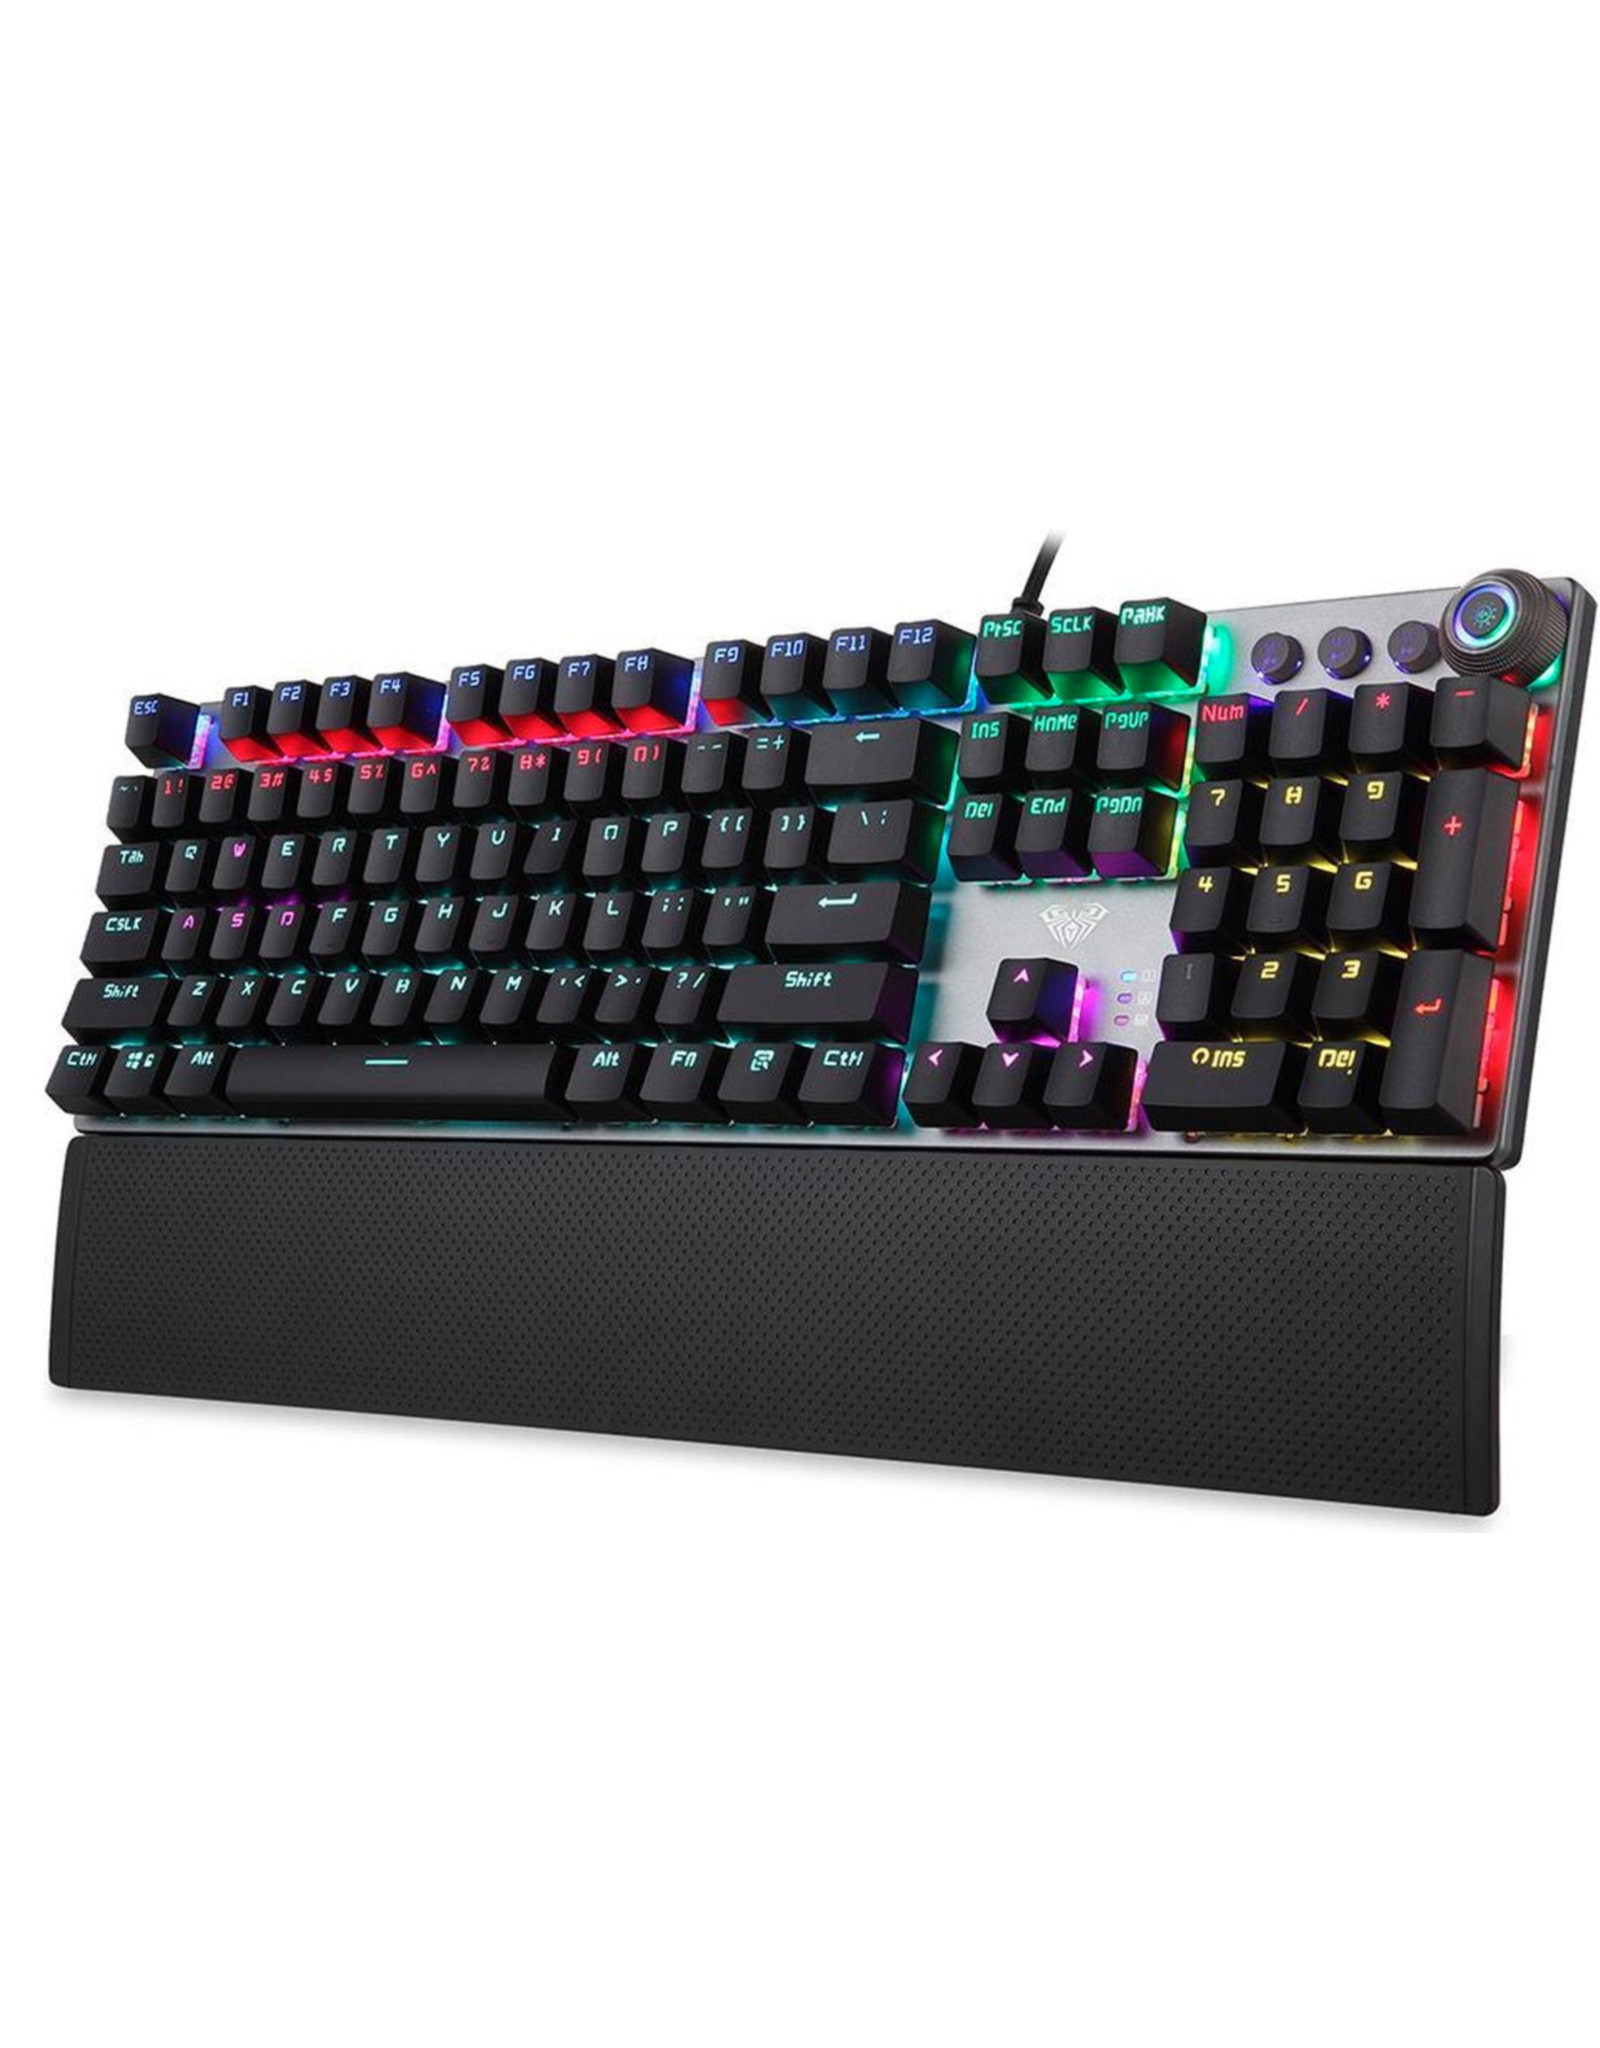 AULA F2058 RGB mechanisch gaming toetsenbord